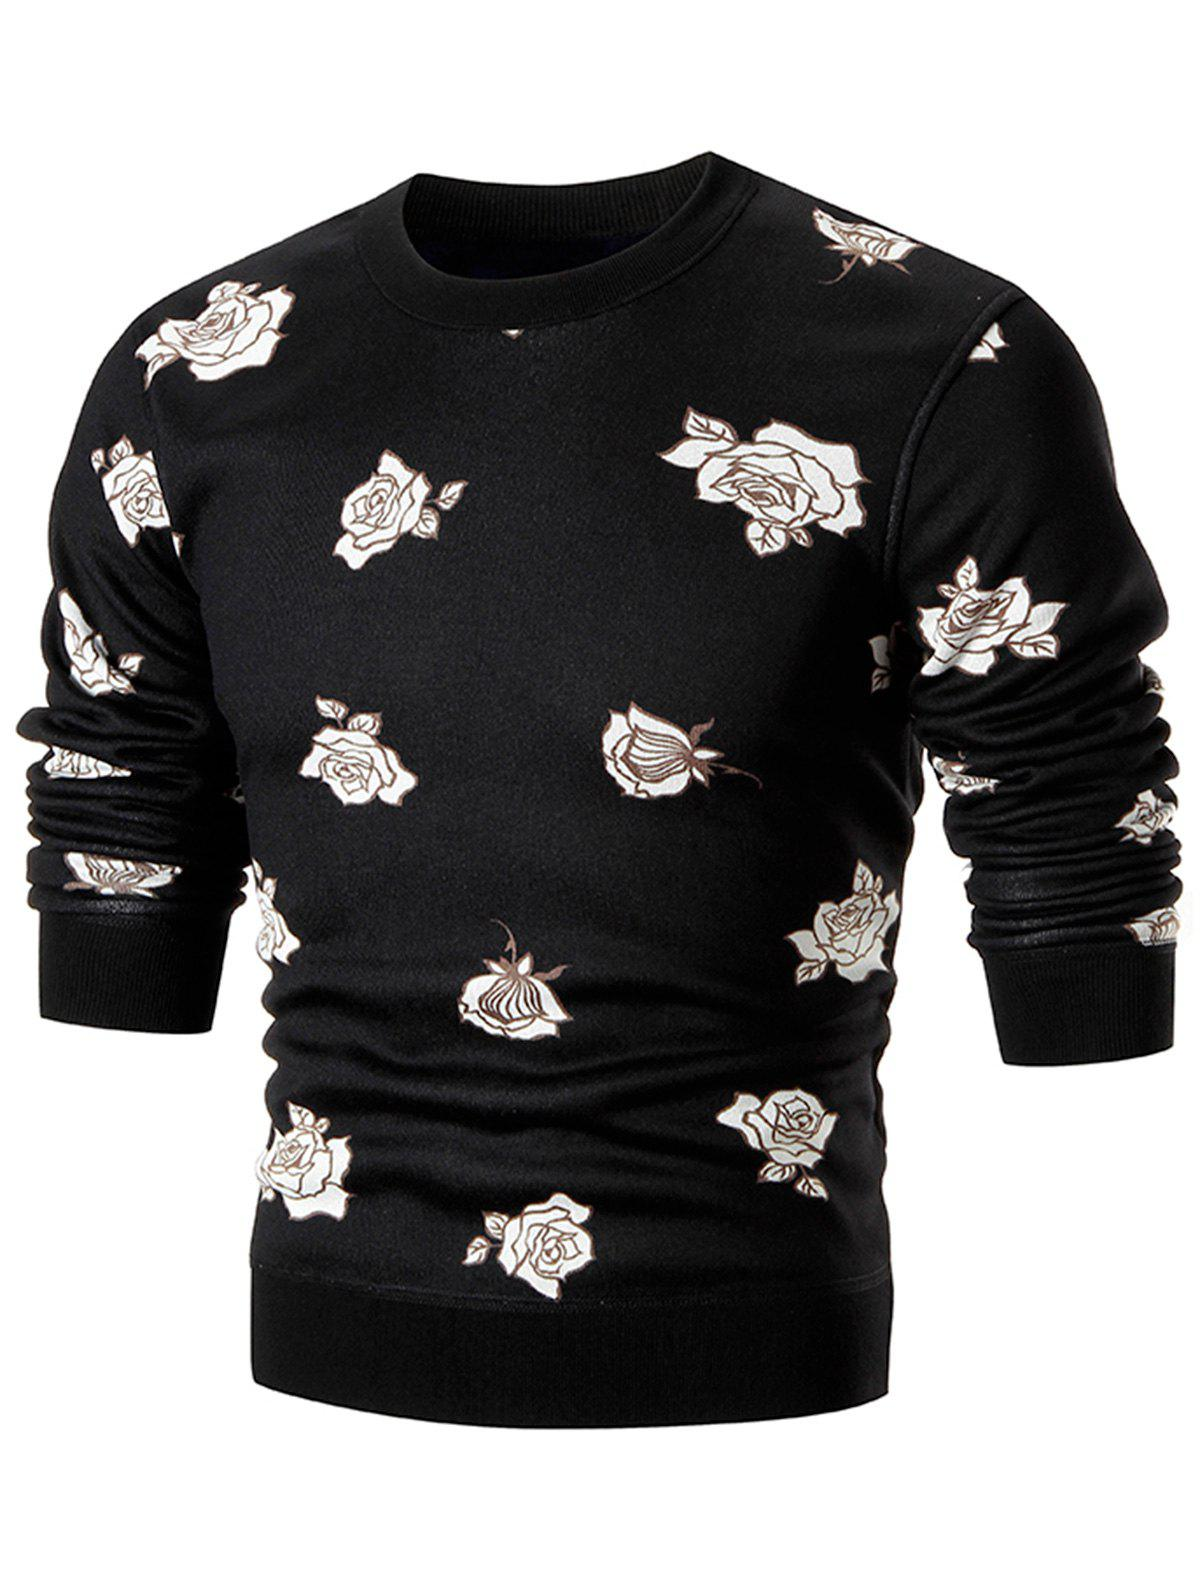 Rose Print Knitted Pullover Crew Neck Sweater - BLACK XL